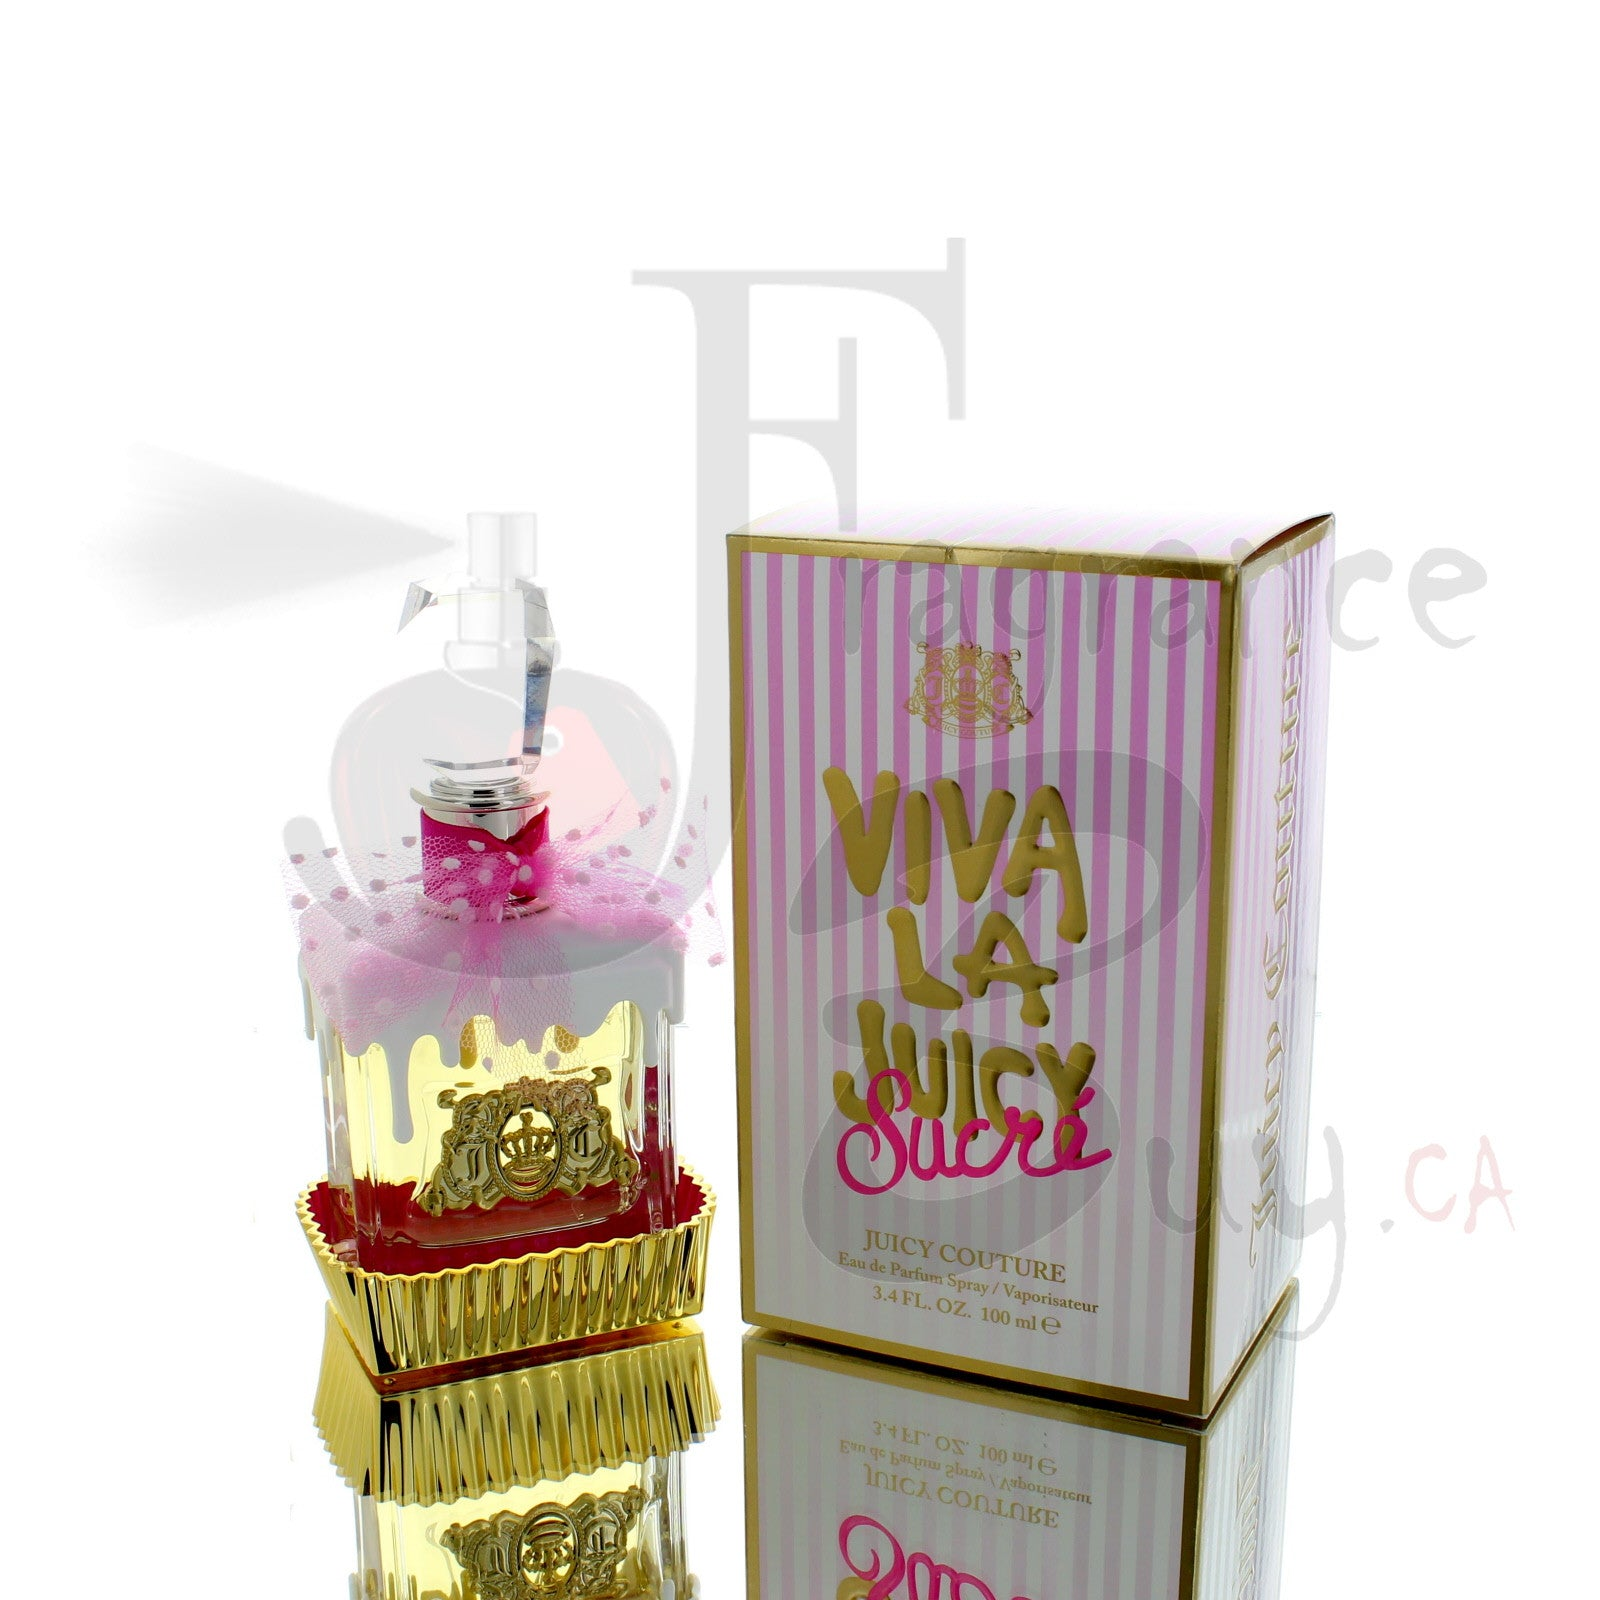 Juicy Couture Viva La Juicy Sucre For Woman